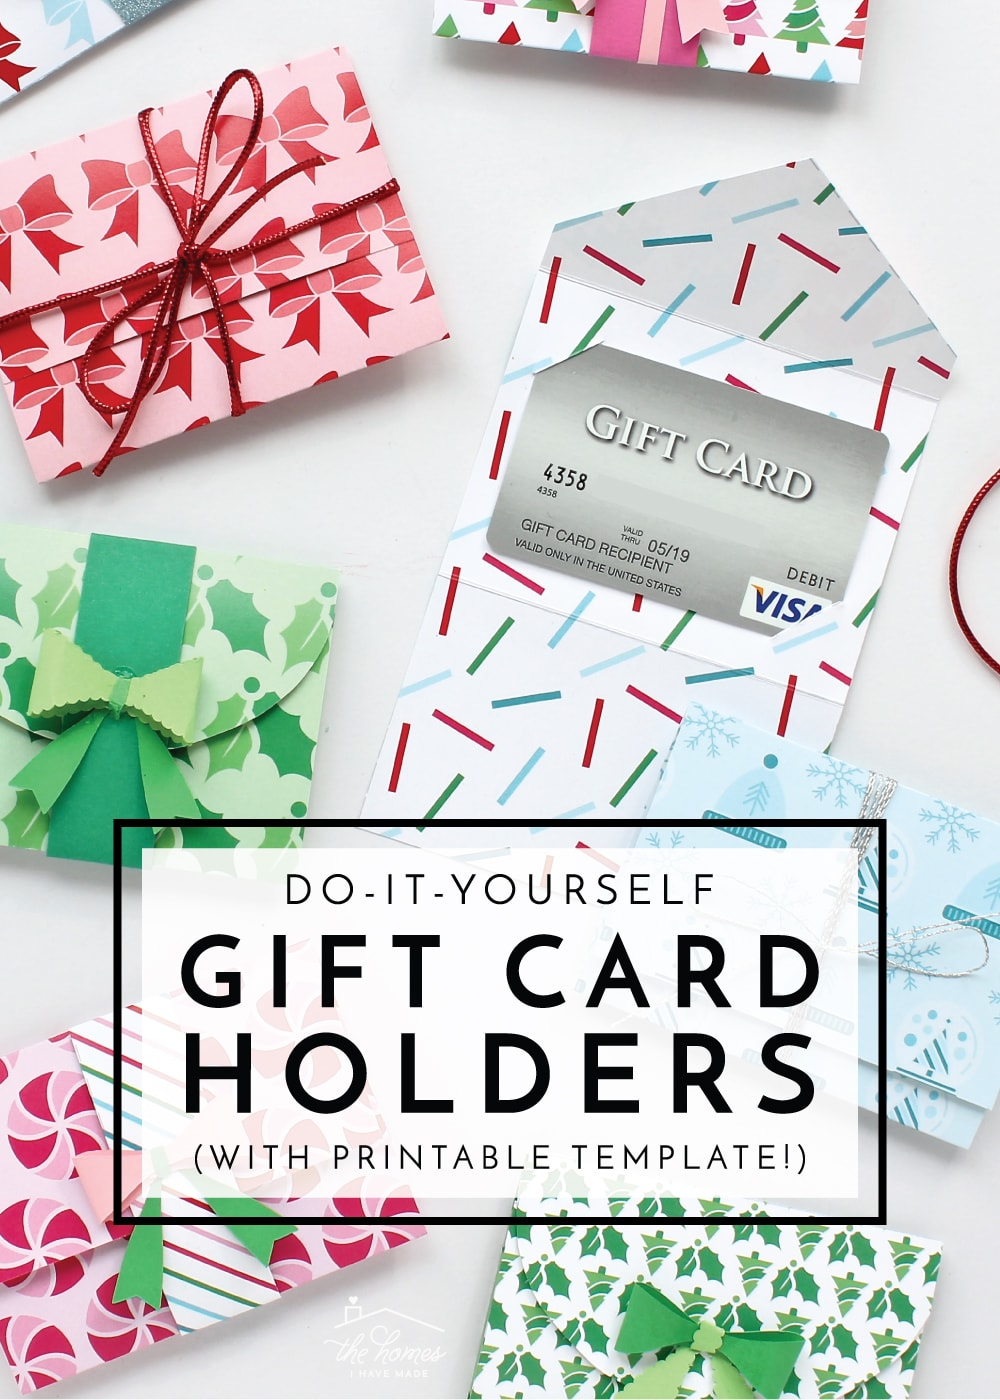 photo regarding Free Printable Gift Card Holder Templates referred to as Do-it-yourself Present Card Holders (with Printable Template!) The Residences